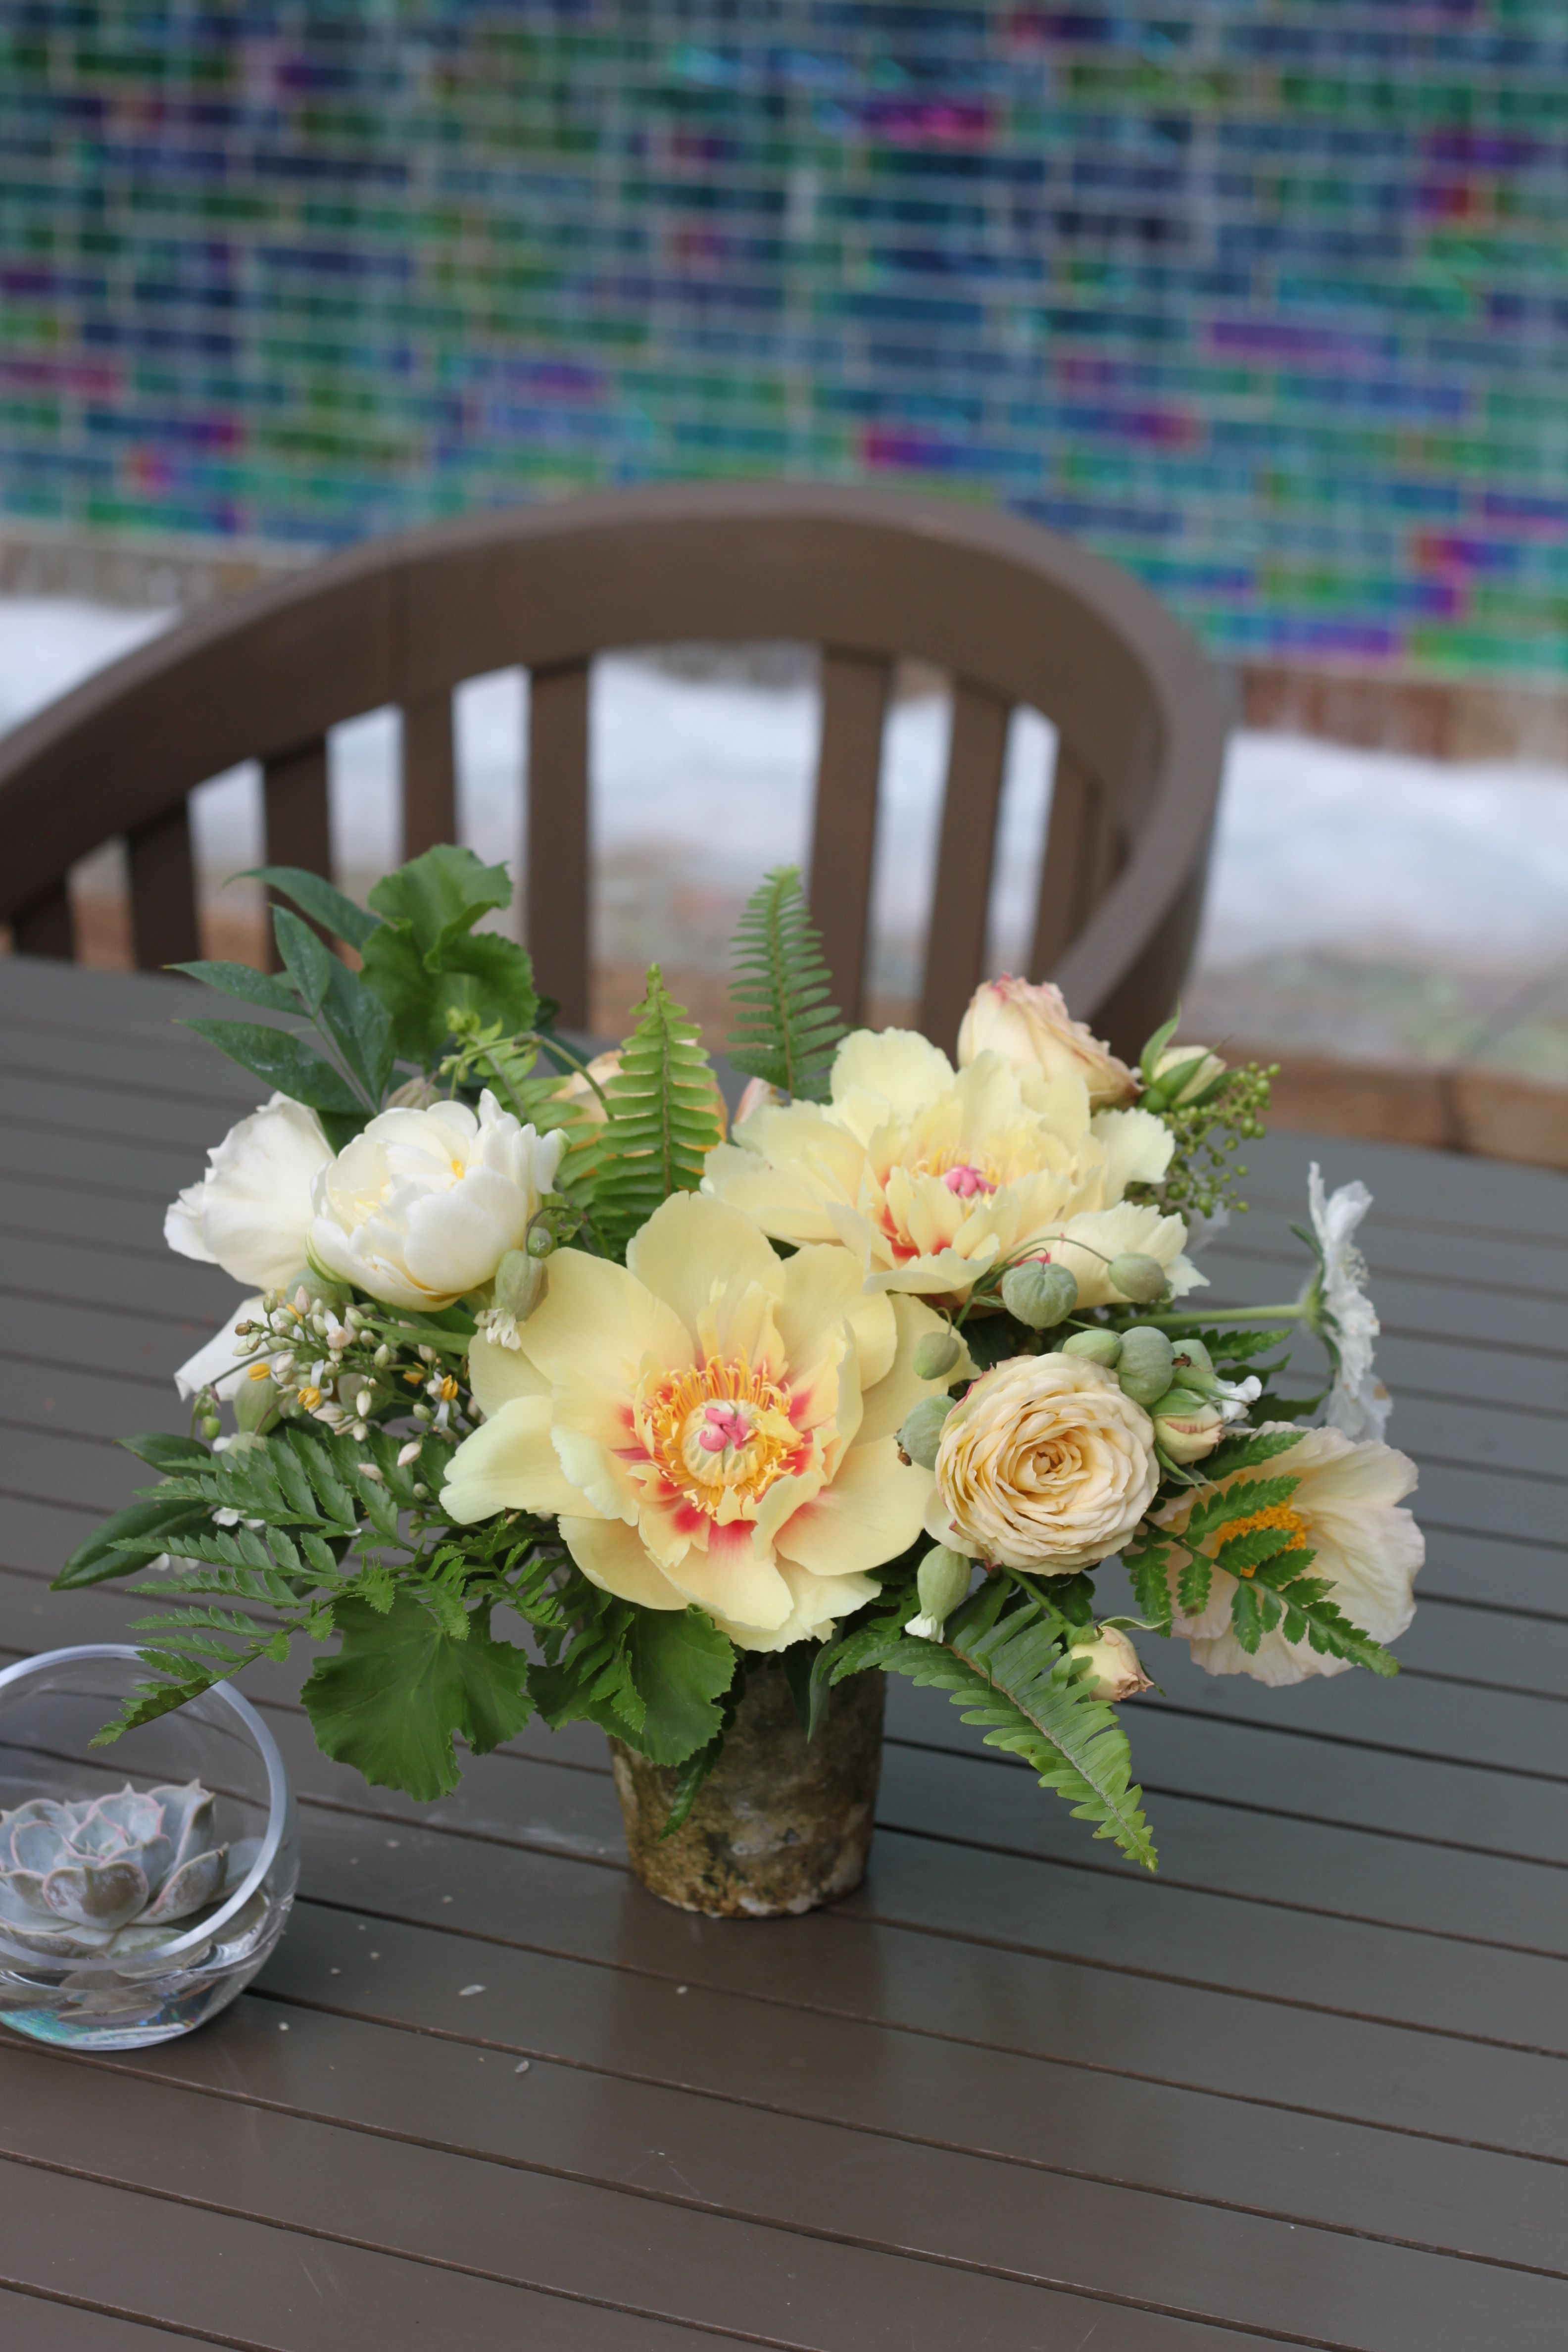 Rustic Vase With Yellow Peonies Yellow Garden Roses Fern And Other